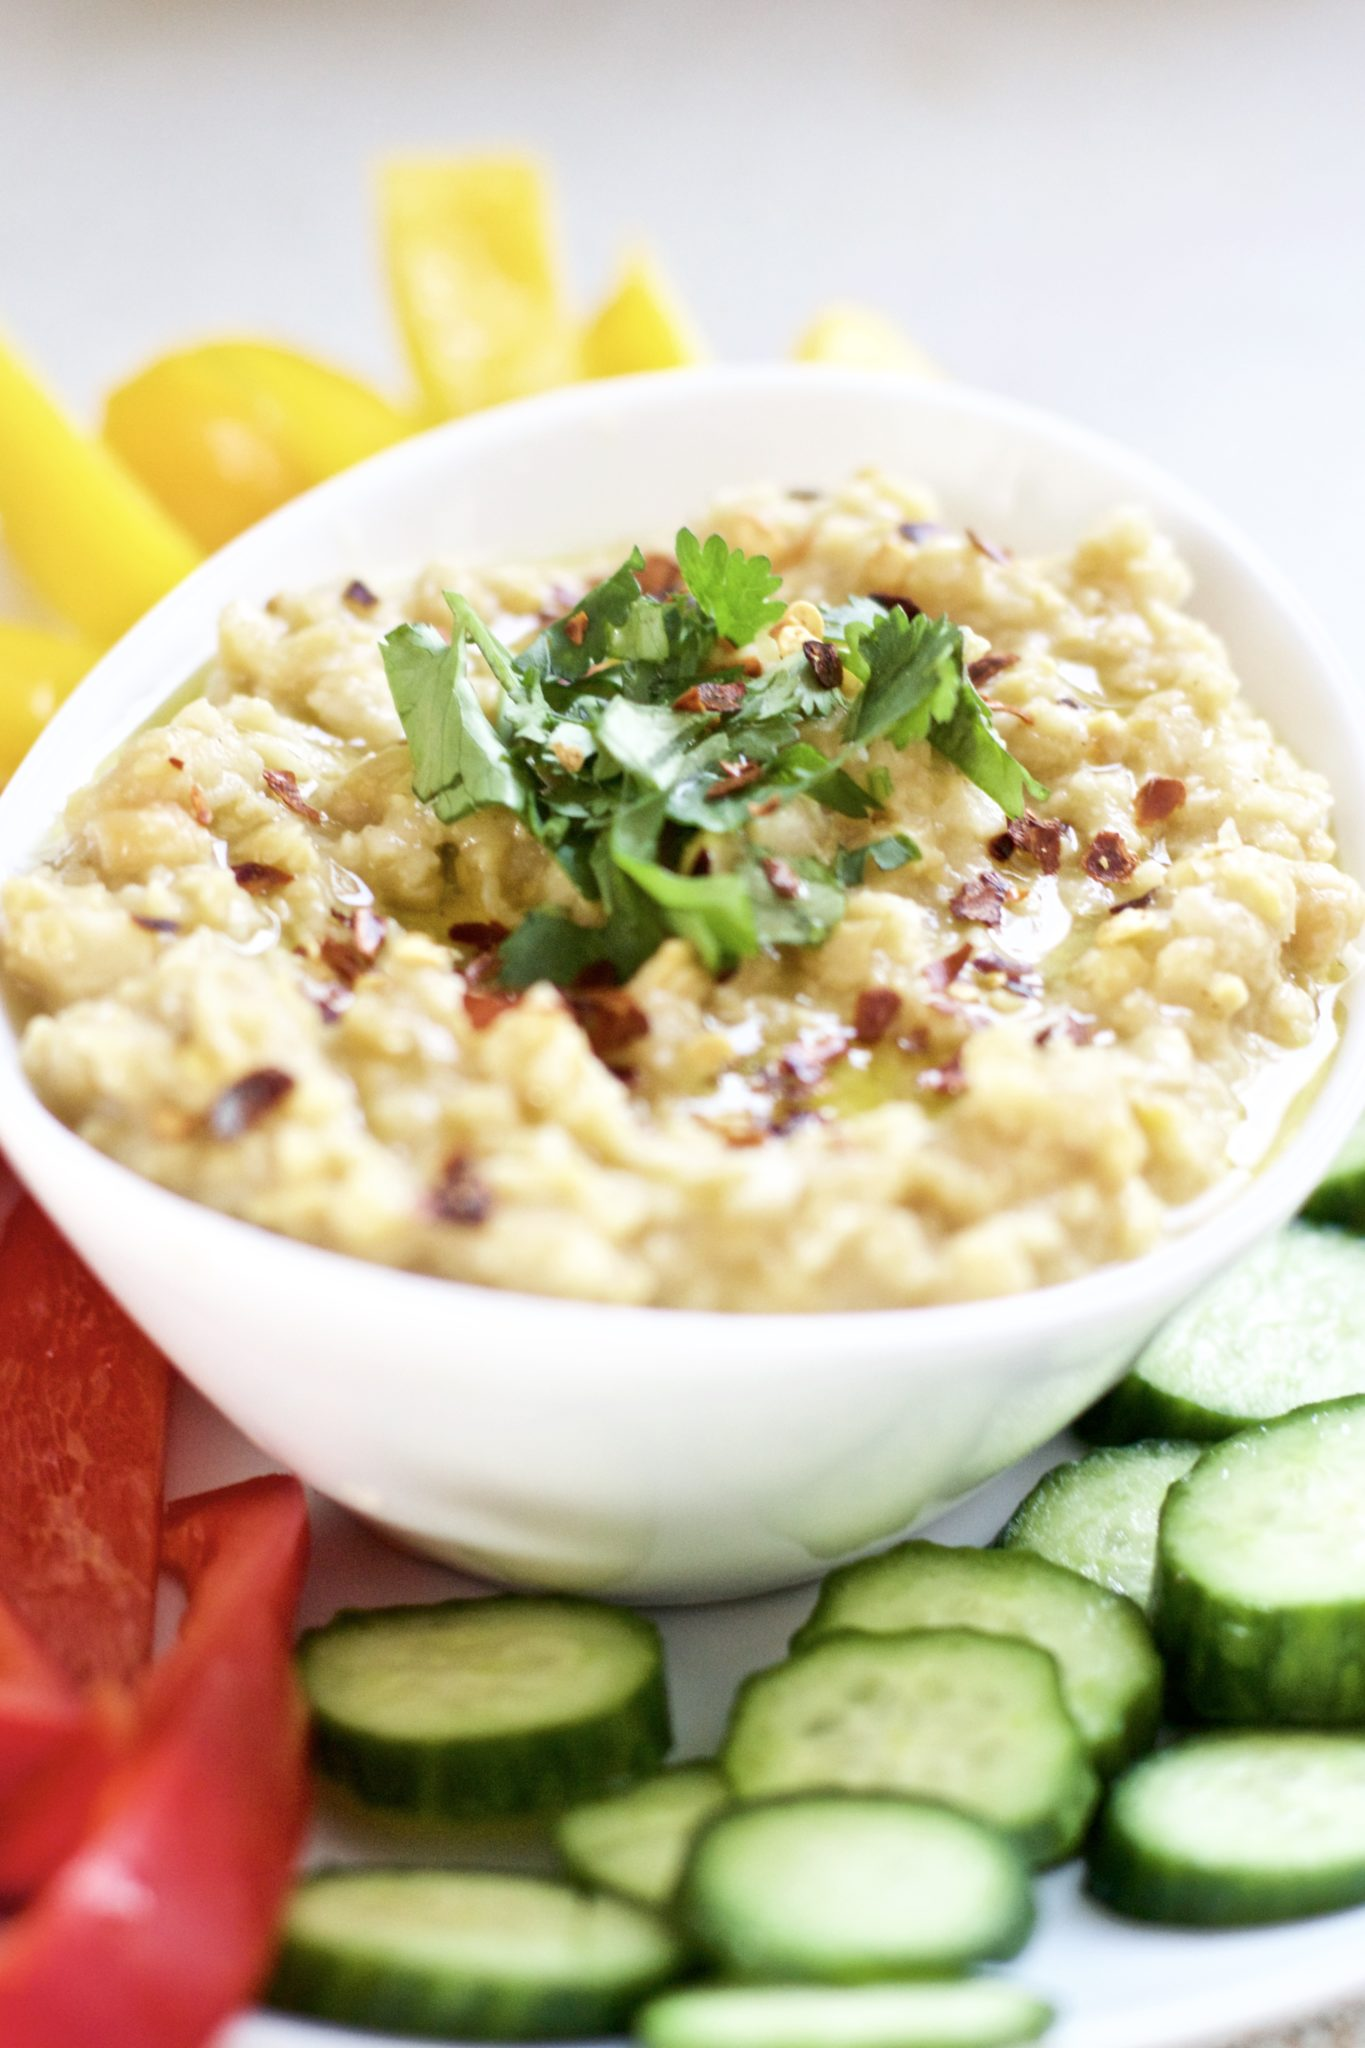 How to Make Homemade Hummus Without a Food Processor